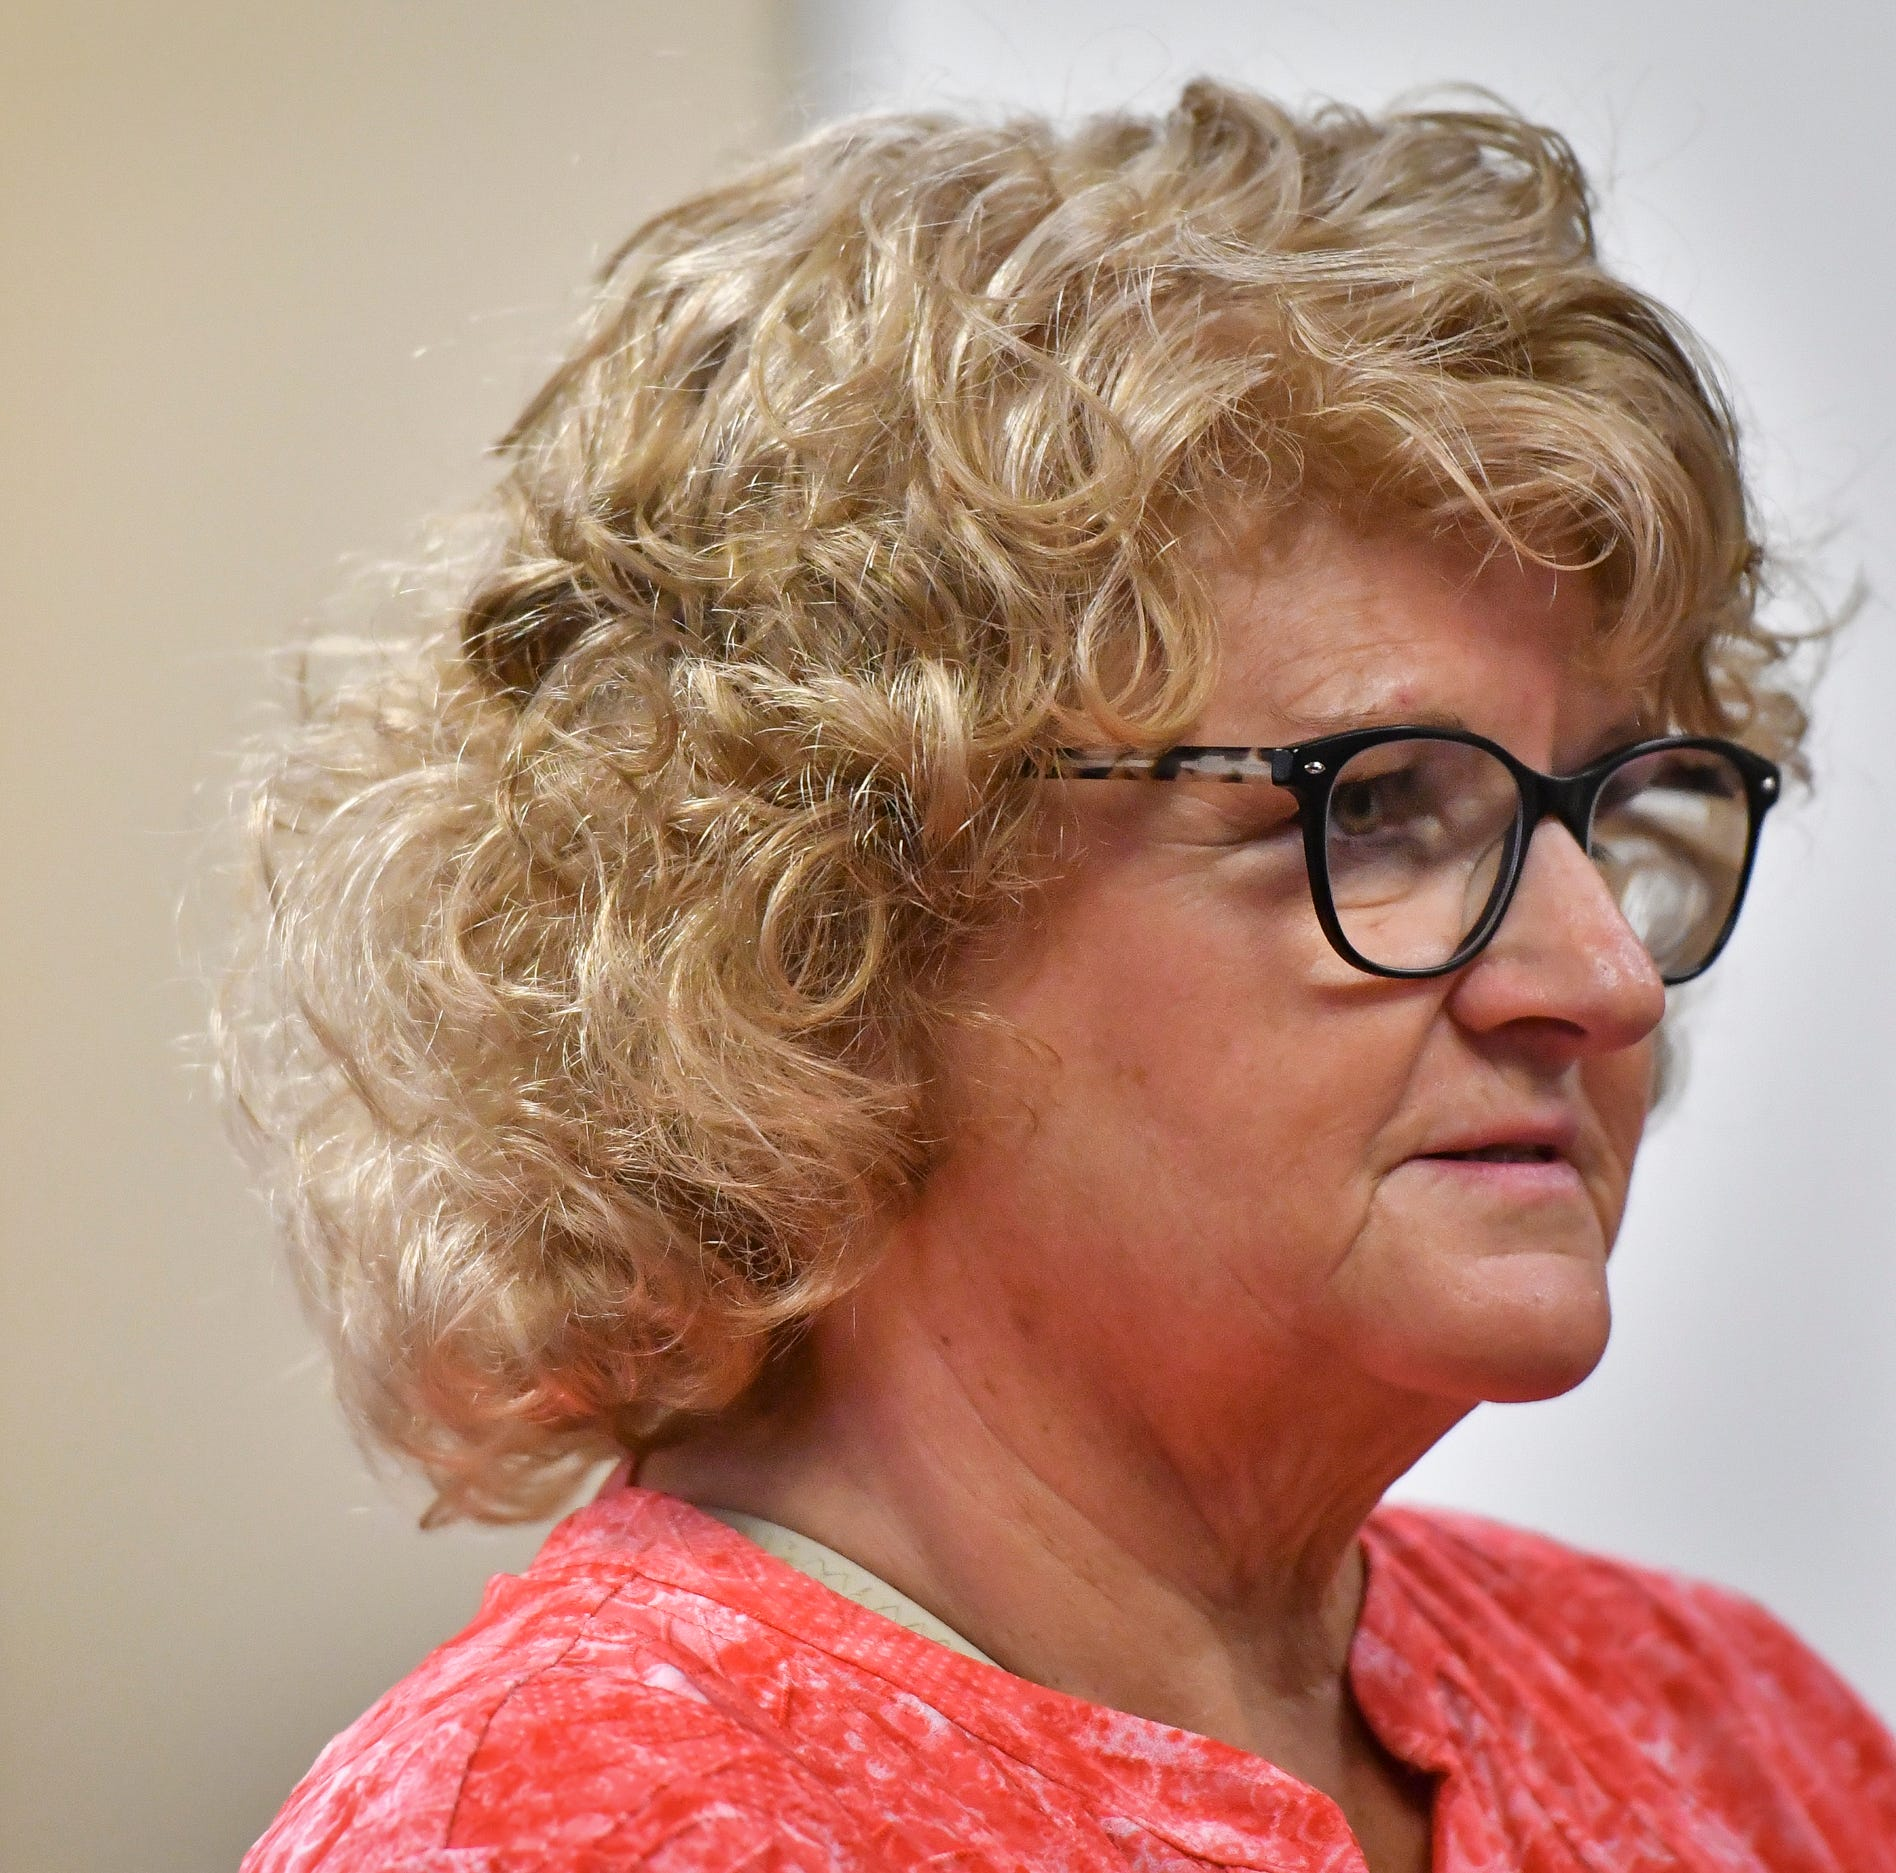 Klages' lawyer says actions of others will be revealed in court